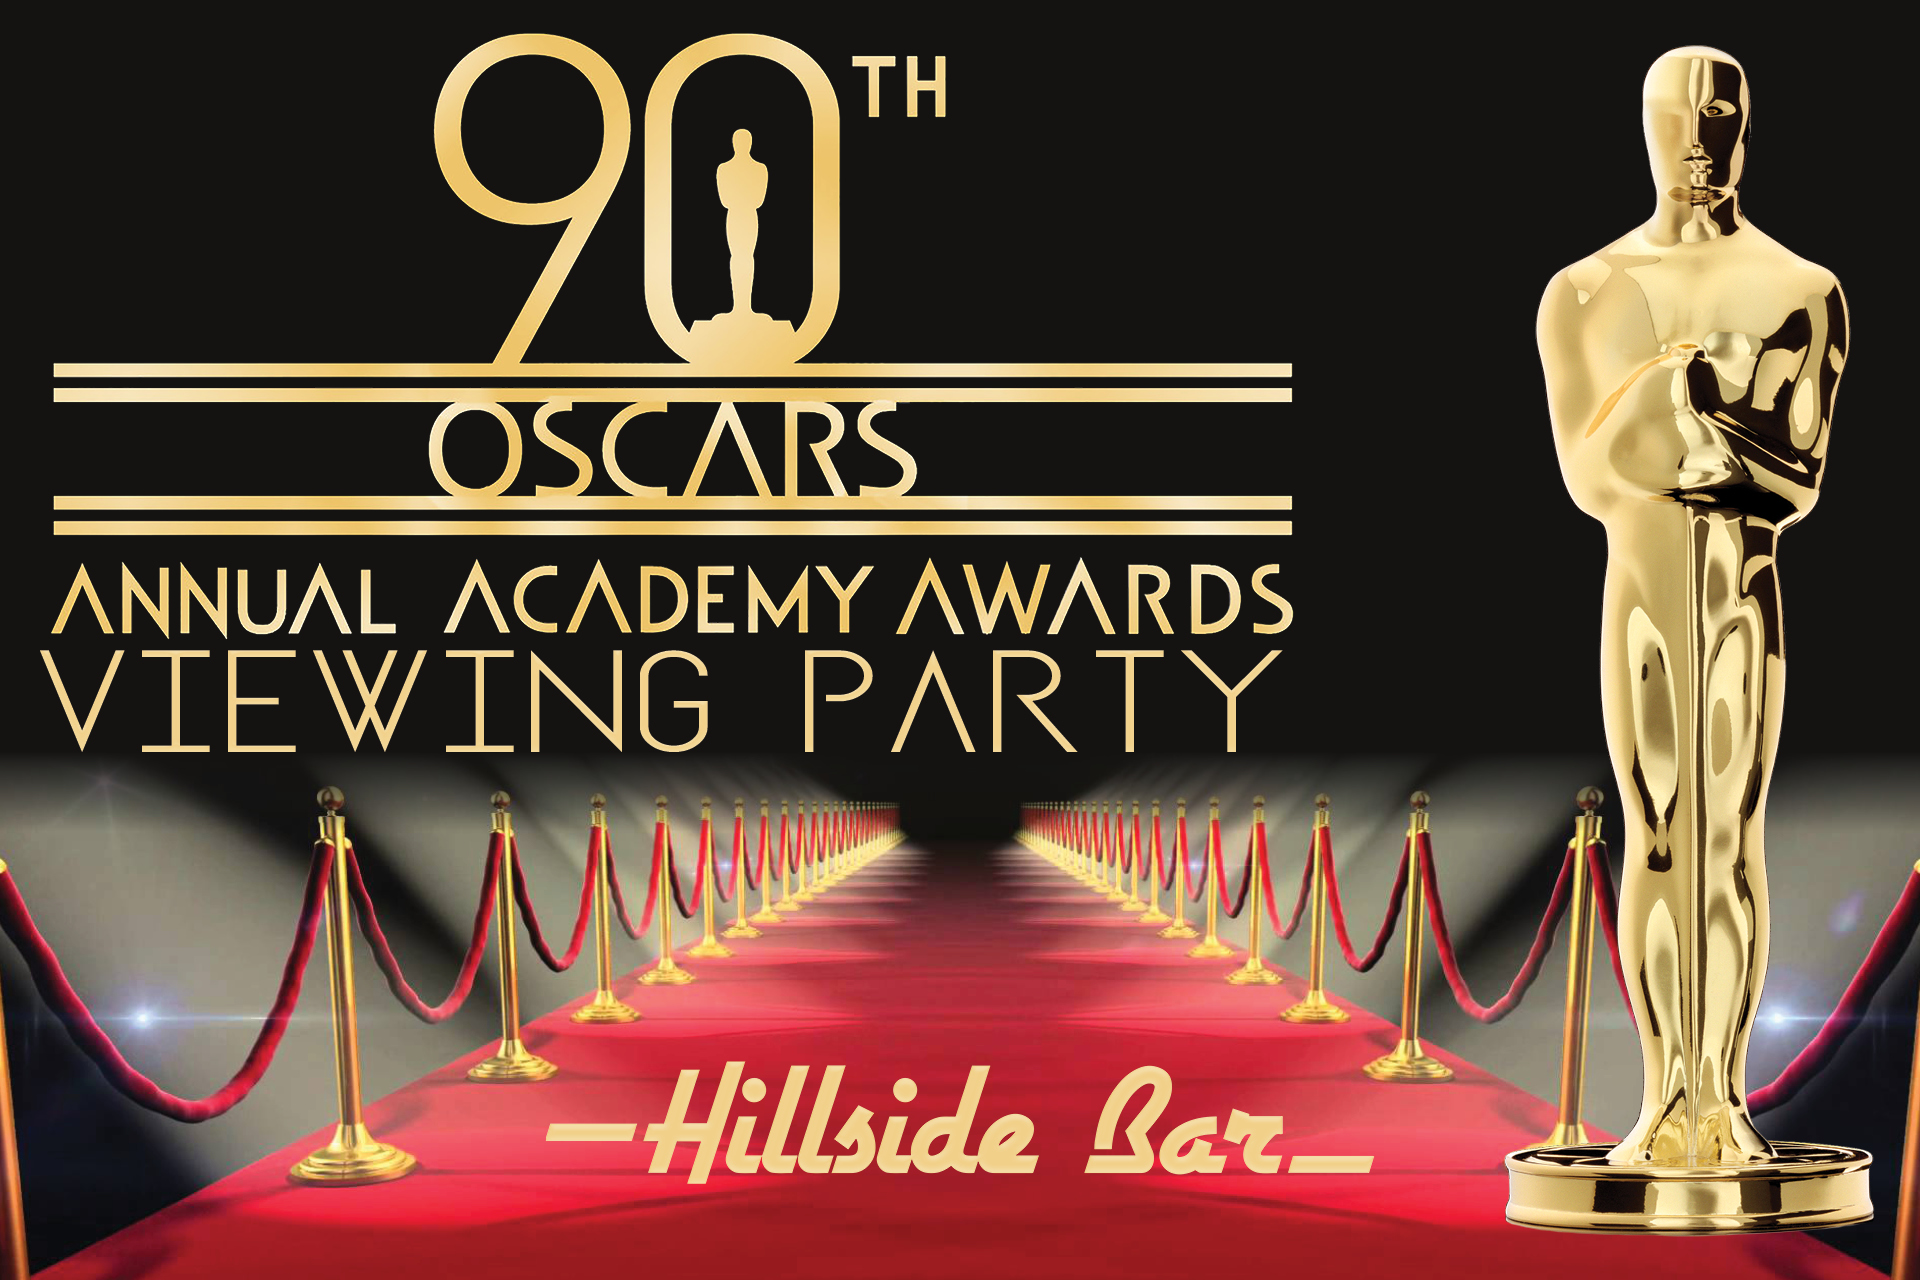 Hilside Oscar Party